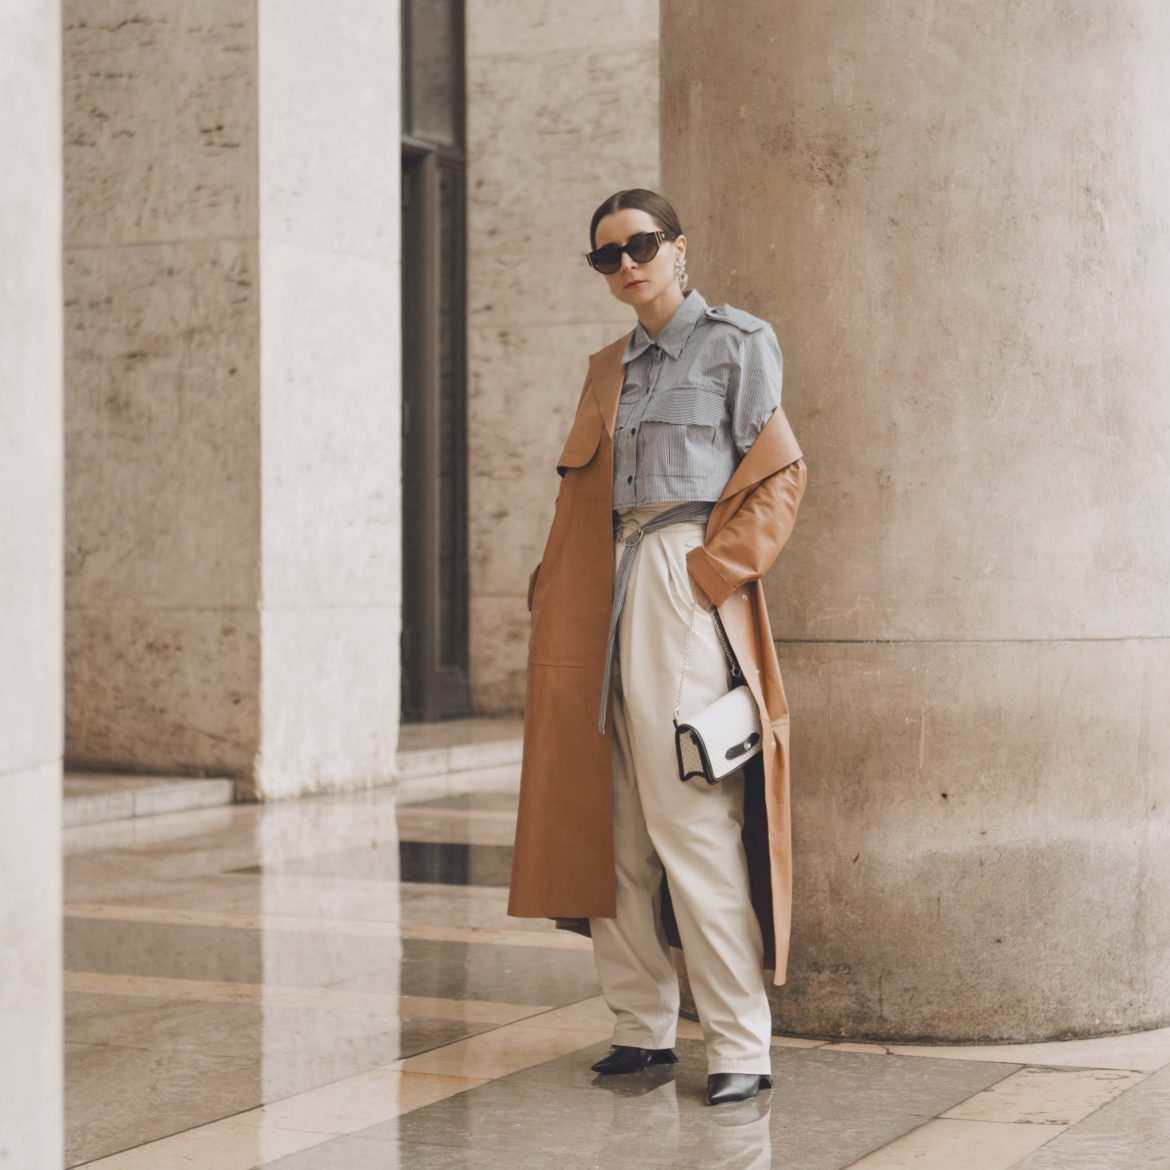 caramel trench paris fashion week street style 2020 AW march 2020 julia comil sportmax the frankie shop l etrange paris